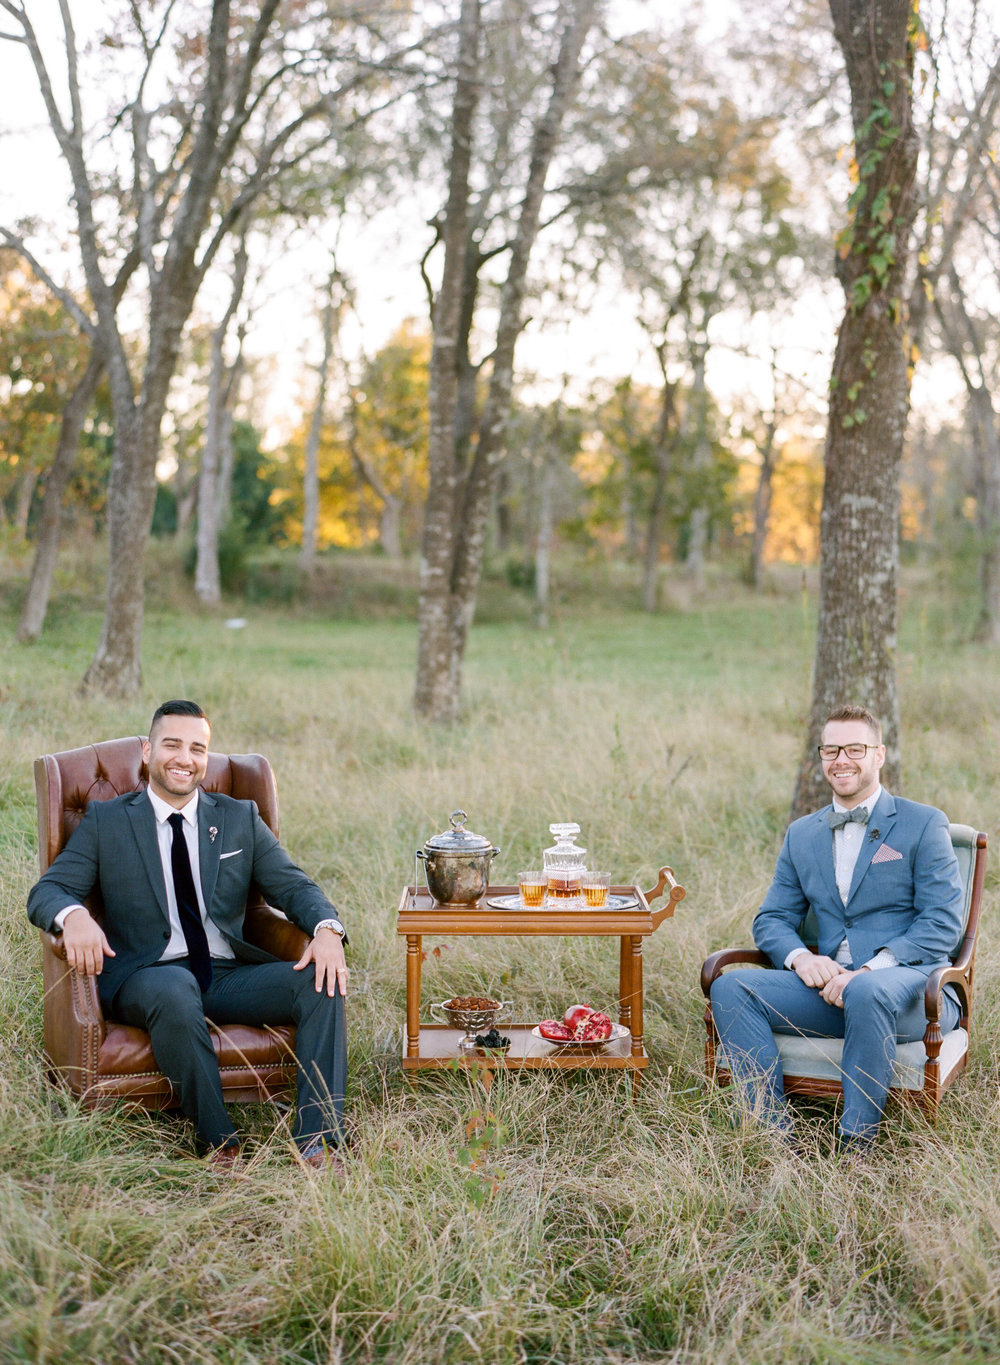 Houston-Texas-Same-Sex-LGBT-Wedding-Photographer-Burnett's-Board-Feature-Dana-Fernandez-Photography-Love-Wins-Film-1.jpg